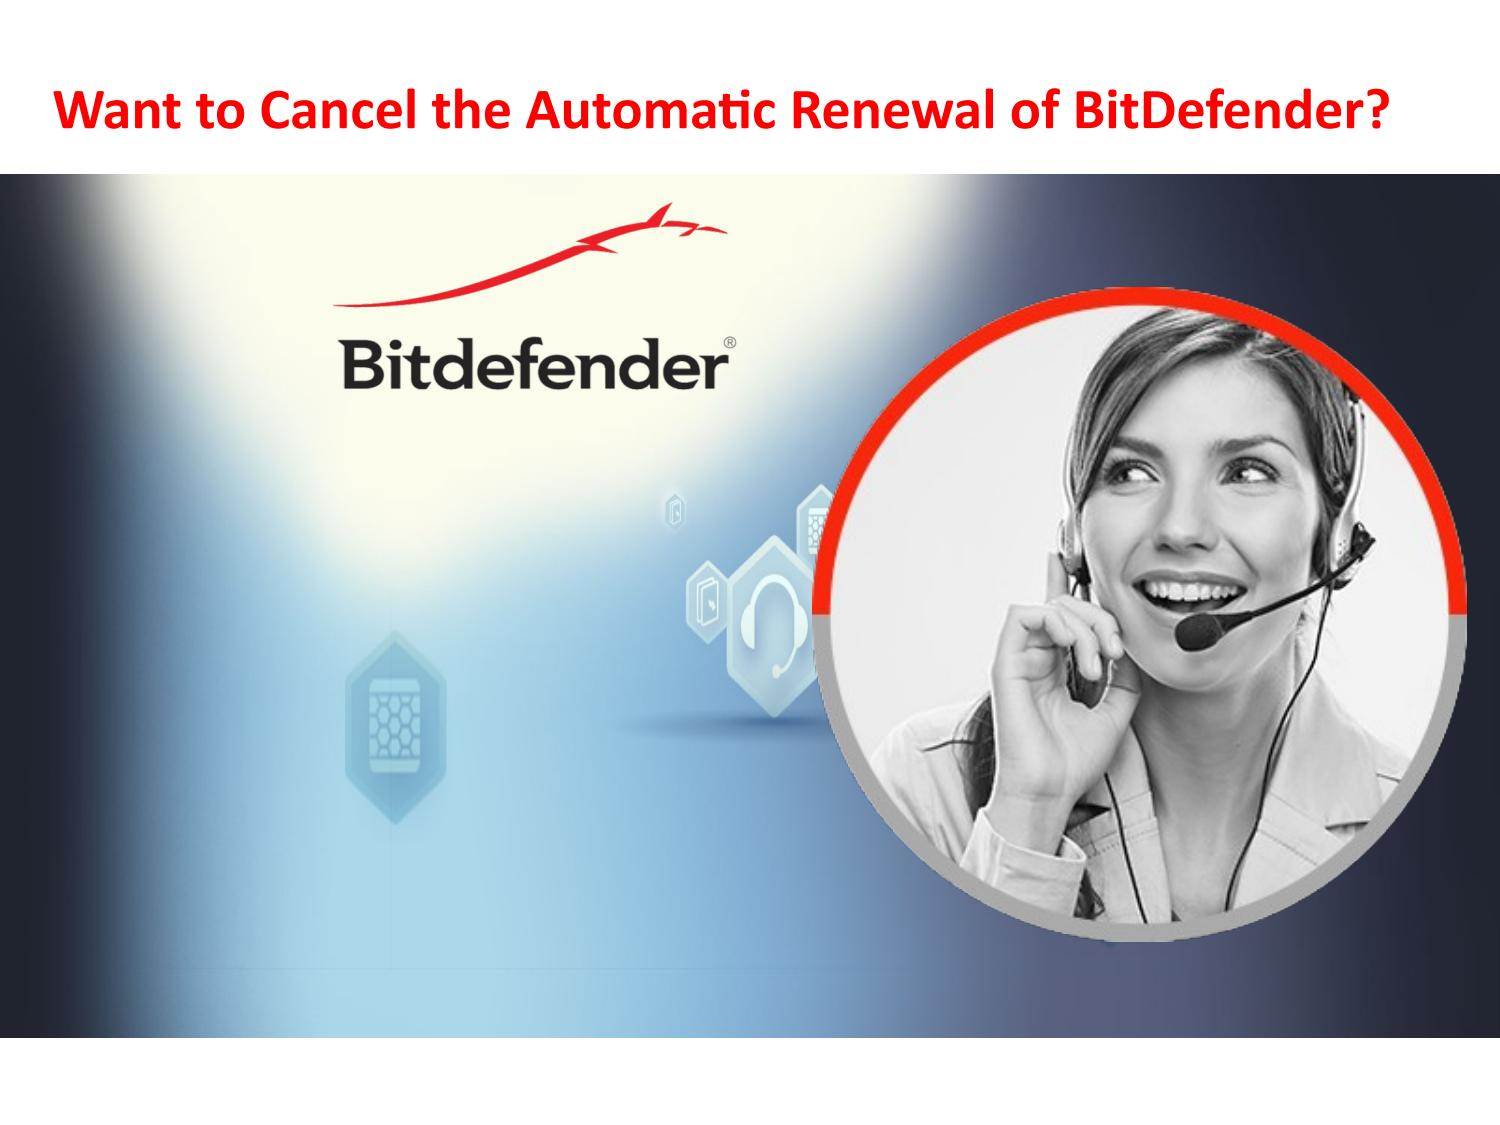 Want to cancel the automatic renewal of bitdefender by